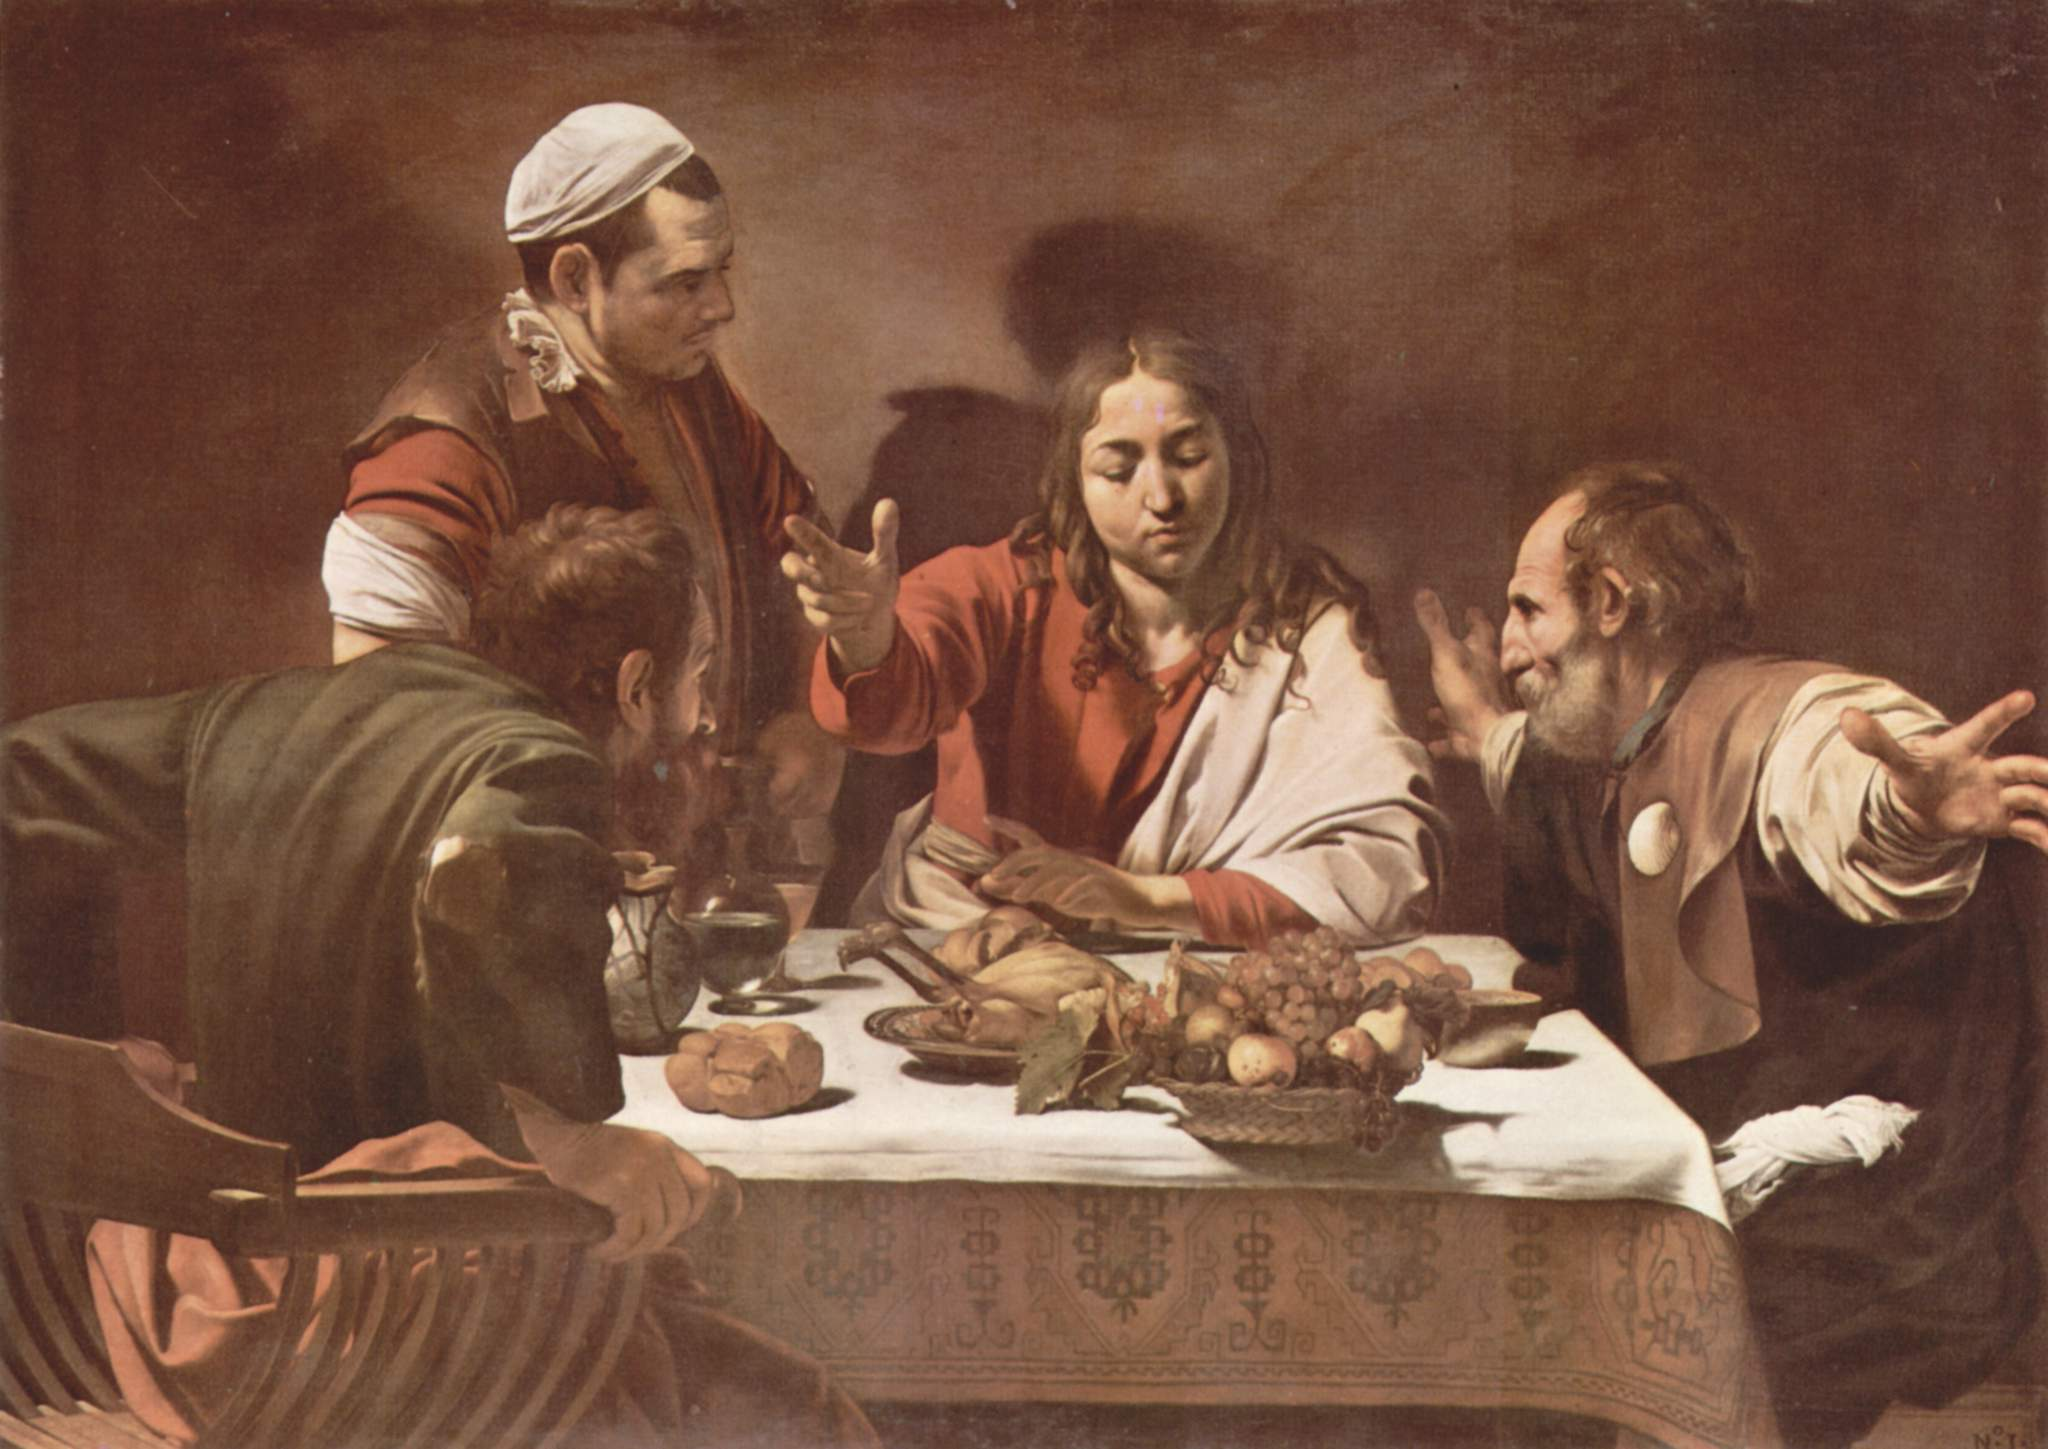 http://upload.wikimedia.org/wikipedia/commons/0/0f/Michelangelo_Caravaggio_011.jpg